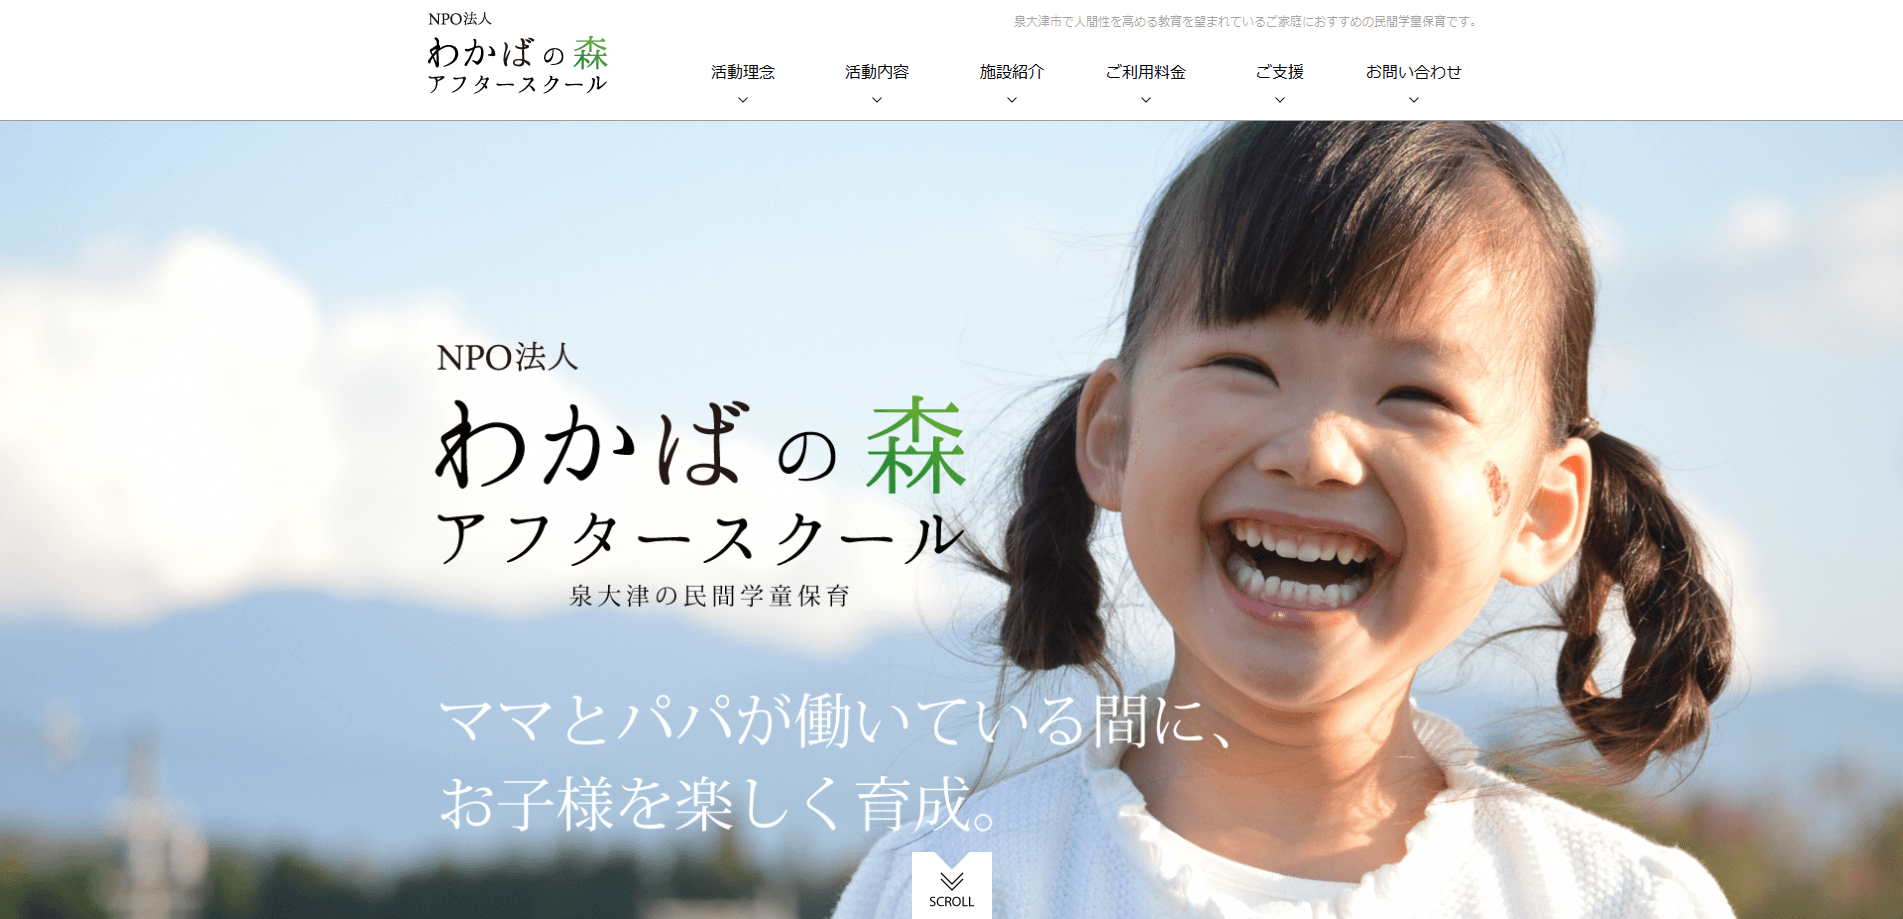 wakaba-as.org_2015-08-03_17-46-43